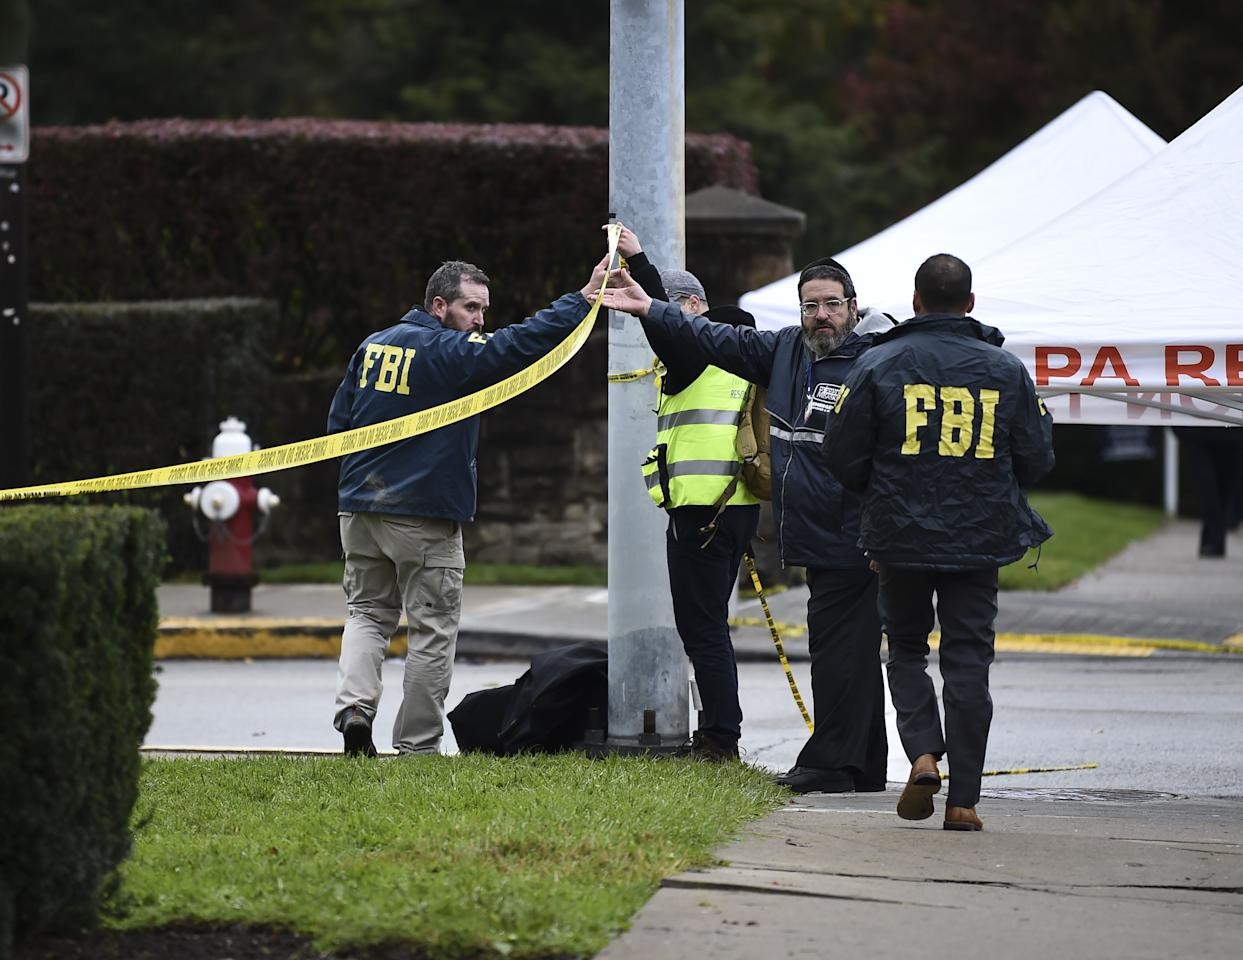 <p>Members of the FBI and others survey the area on Oct. 28, 2018 outside the Tree of Life Synagogue after a shooting there left 11 people dead in the Squirrel Hill neighborhood of Pittsburgh on Oct. 27, 2018. (Photo: Brendan Smialowski/AFP/Getty Images) </p>